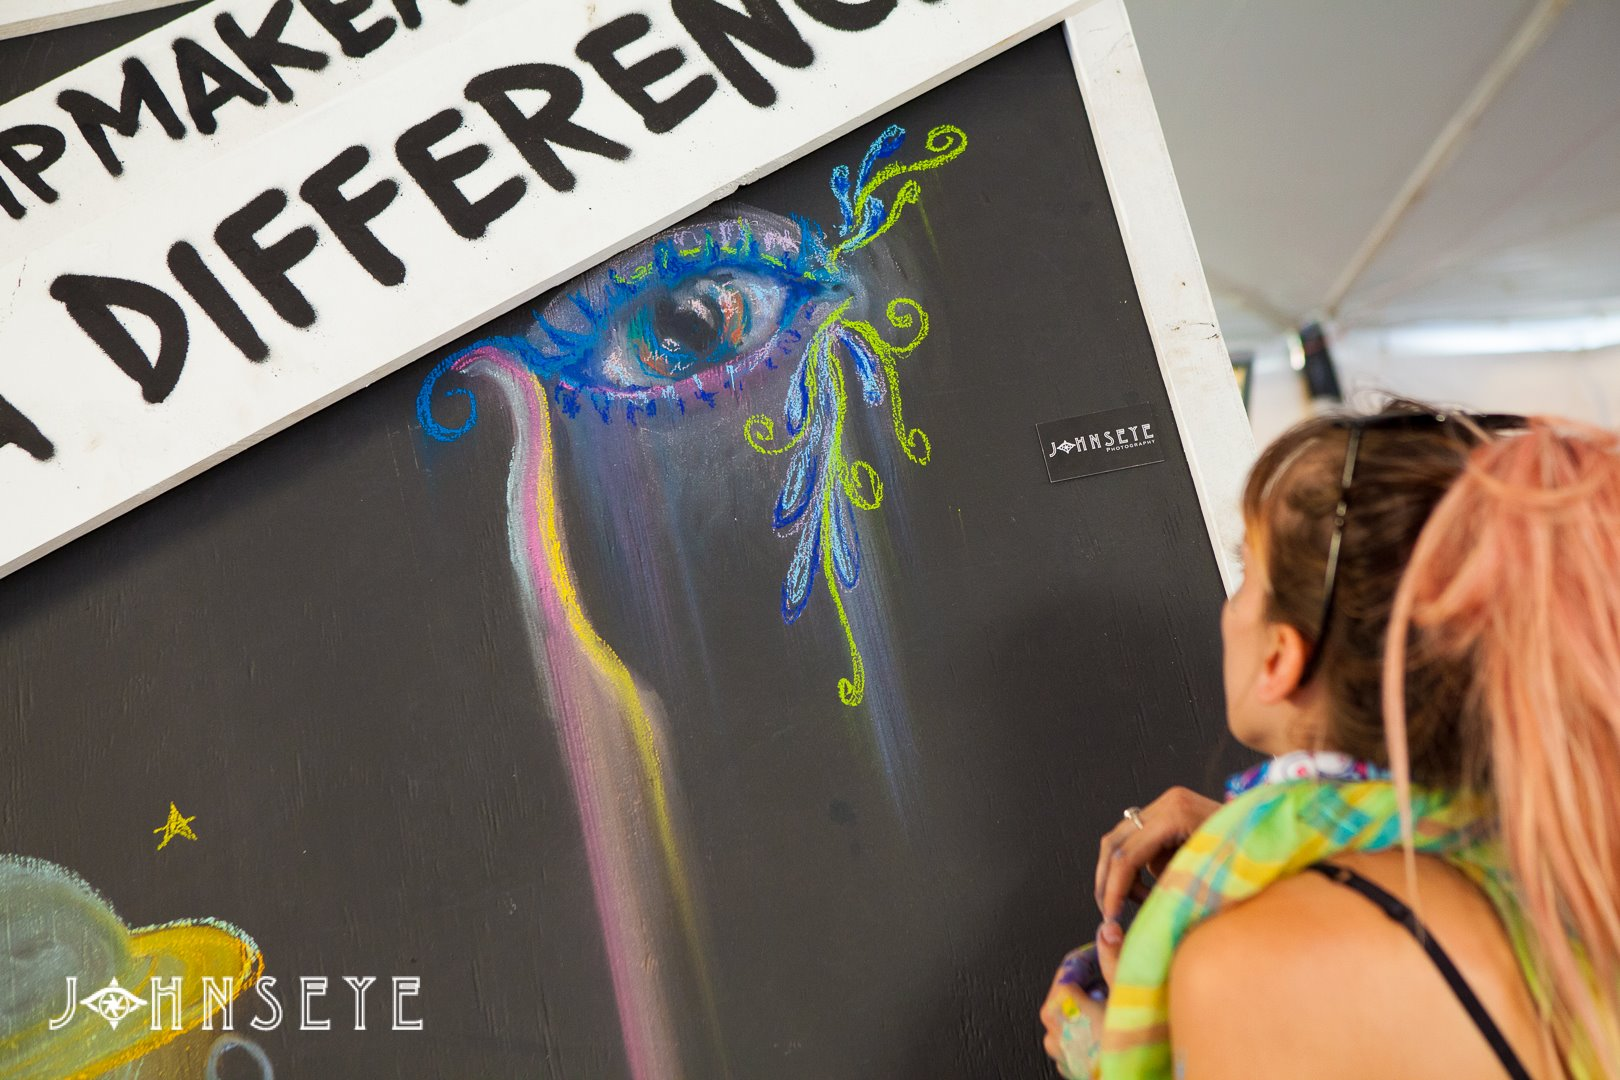 Taking a minimal break from live painting at Summer Camp Music Festival 2015, to live chalk drawing for the Make A Difference community chalk board.